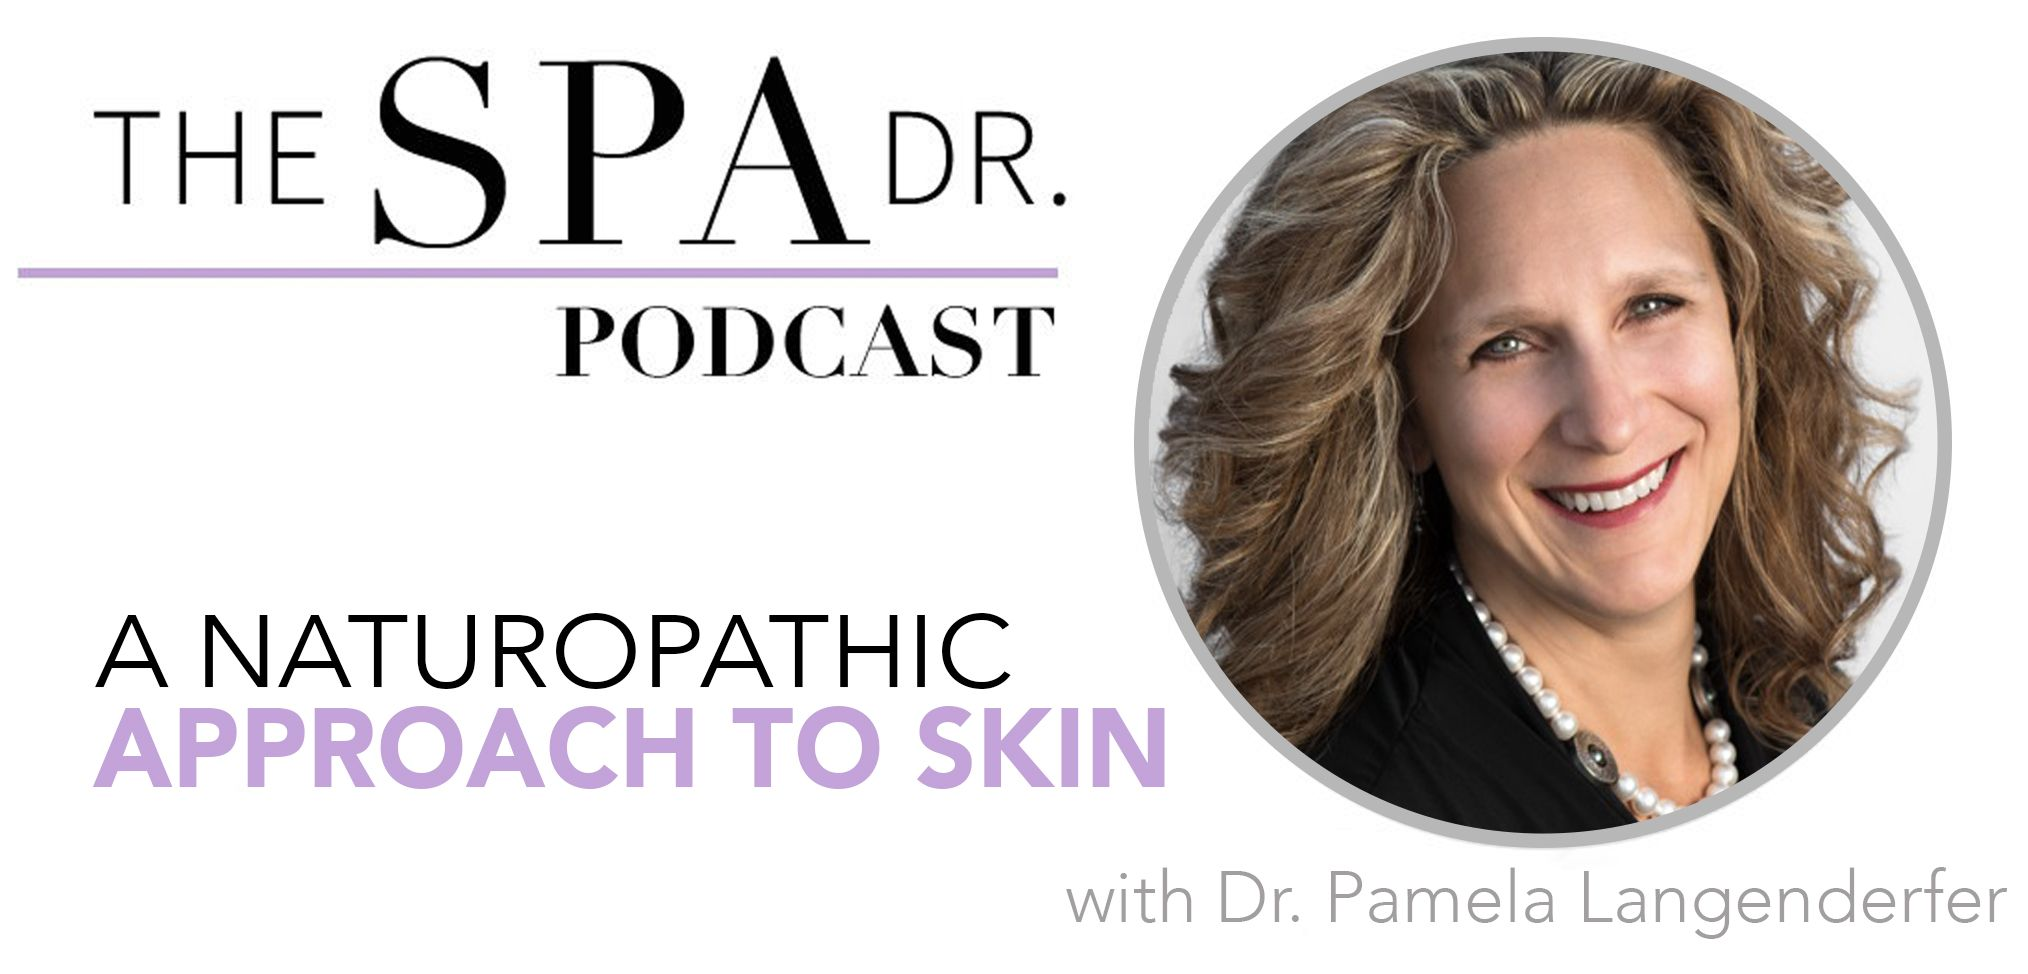 A Naturopathic Approach to Skin with Dr. Pamela Langenderfer